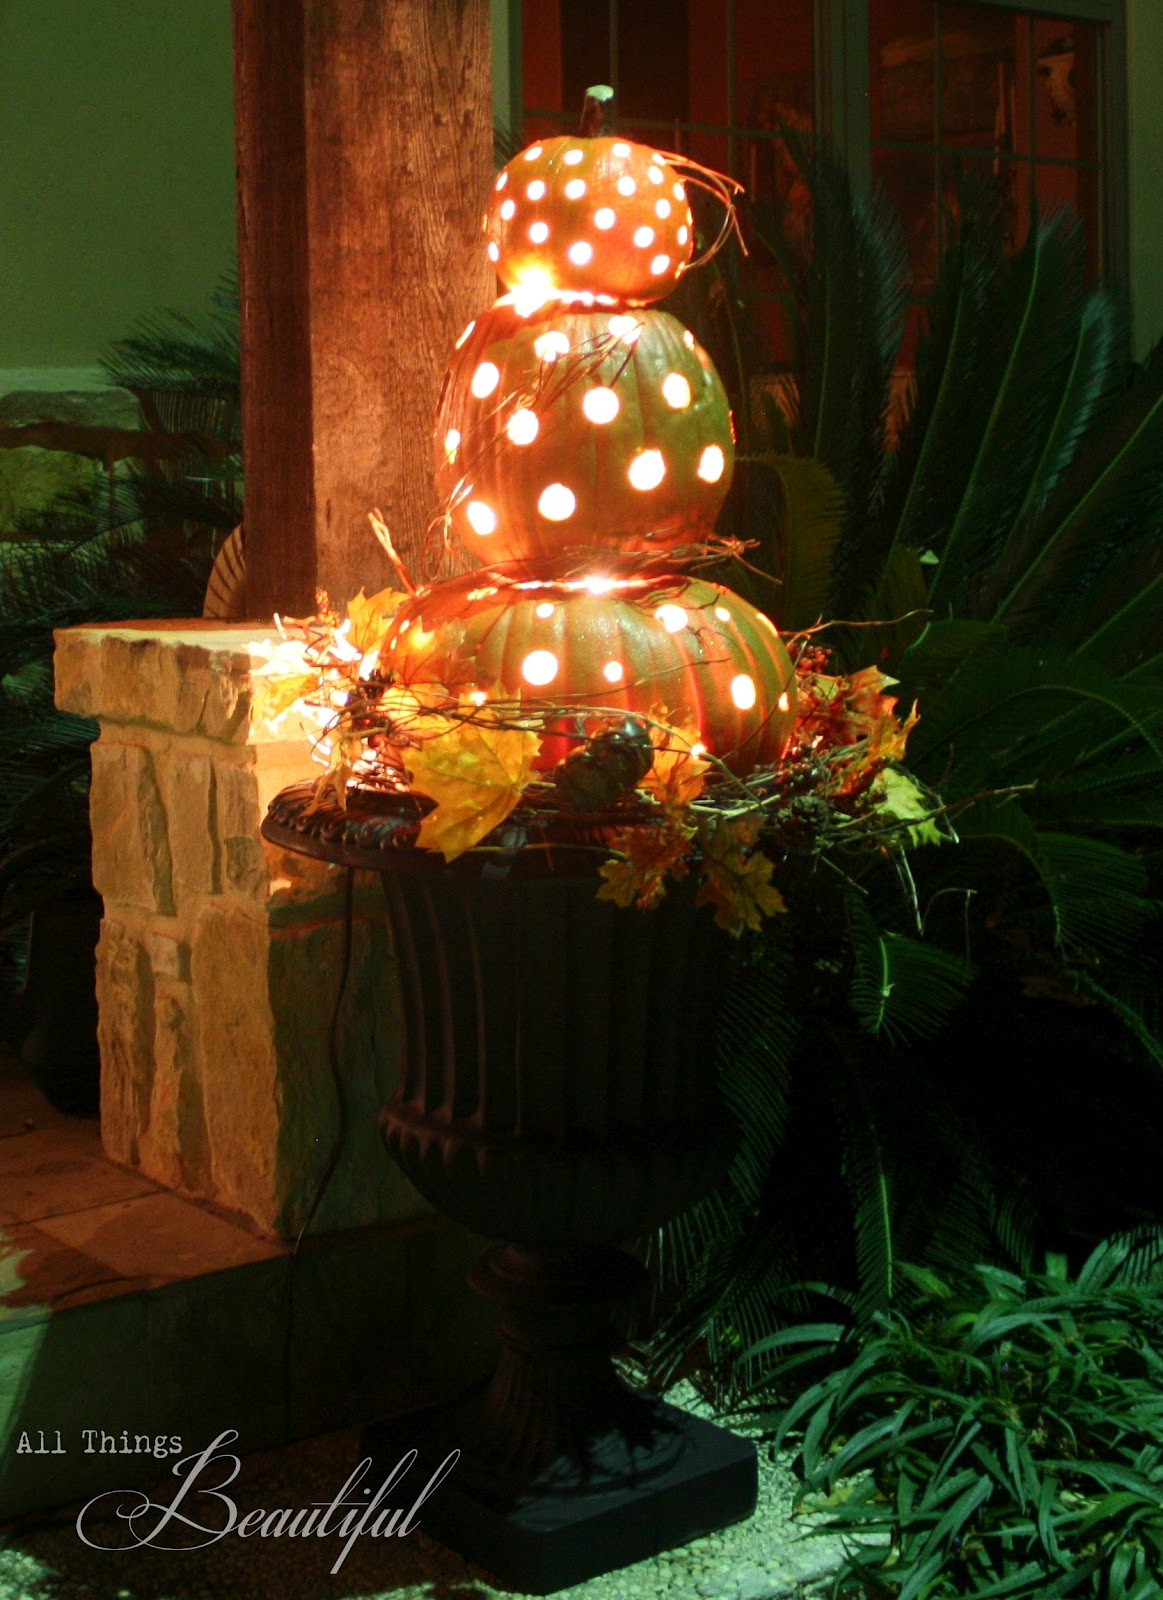 A Glowing Homage to Fall